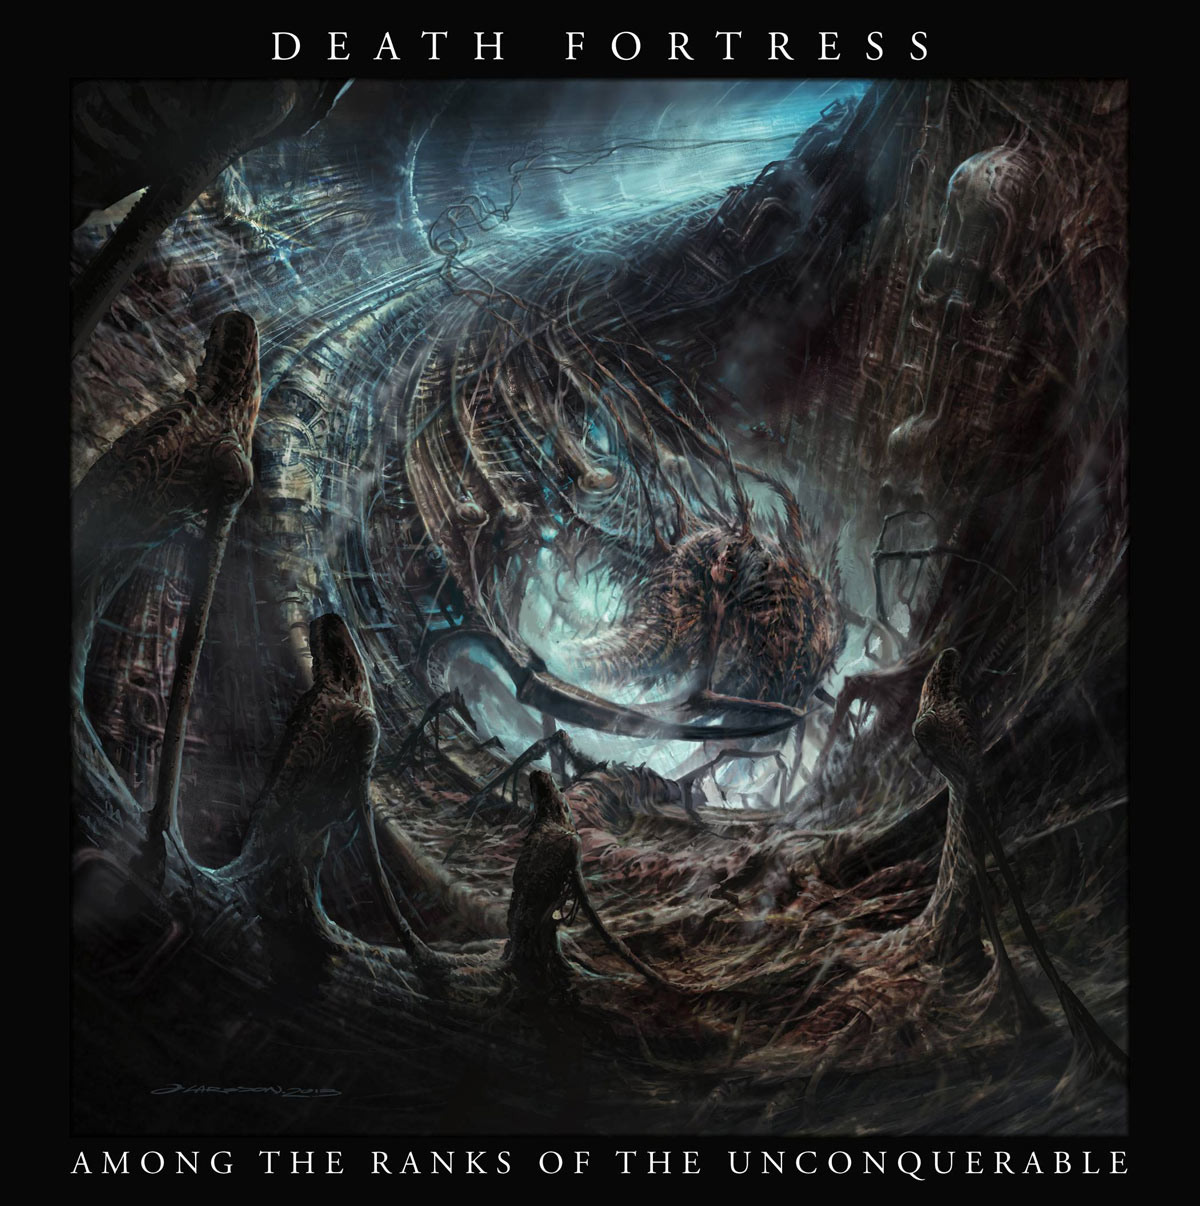 Death Fortress - Among the Ranks of the Unconquerable